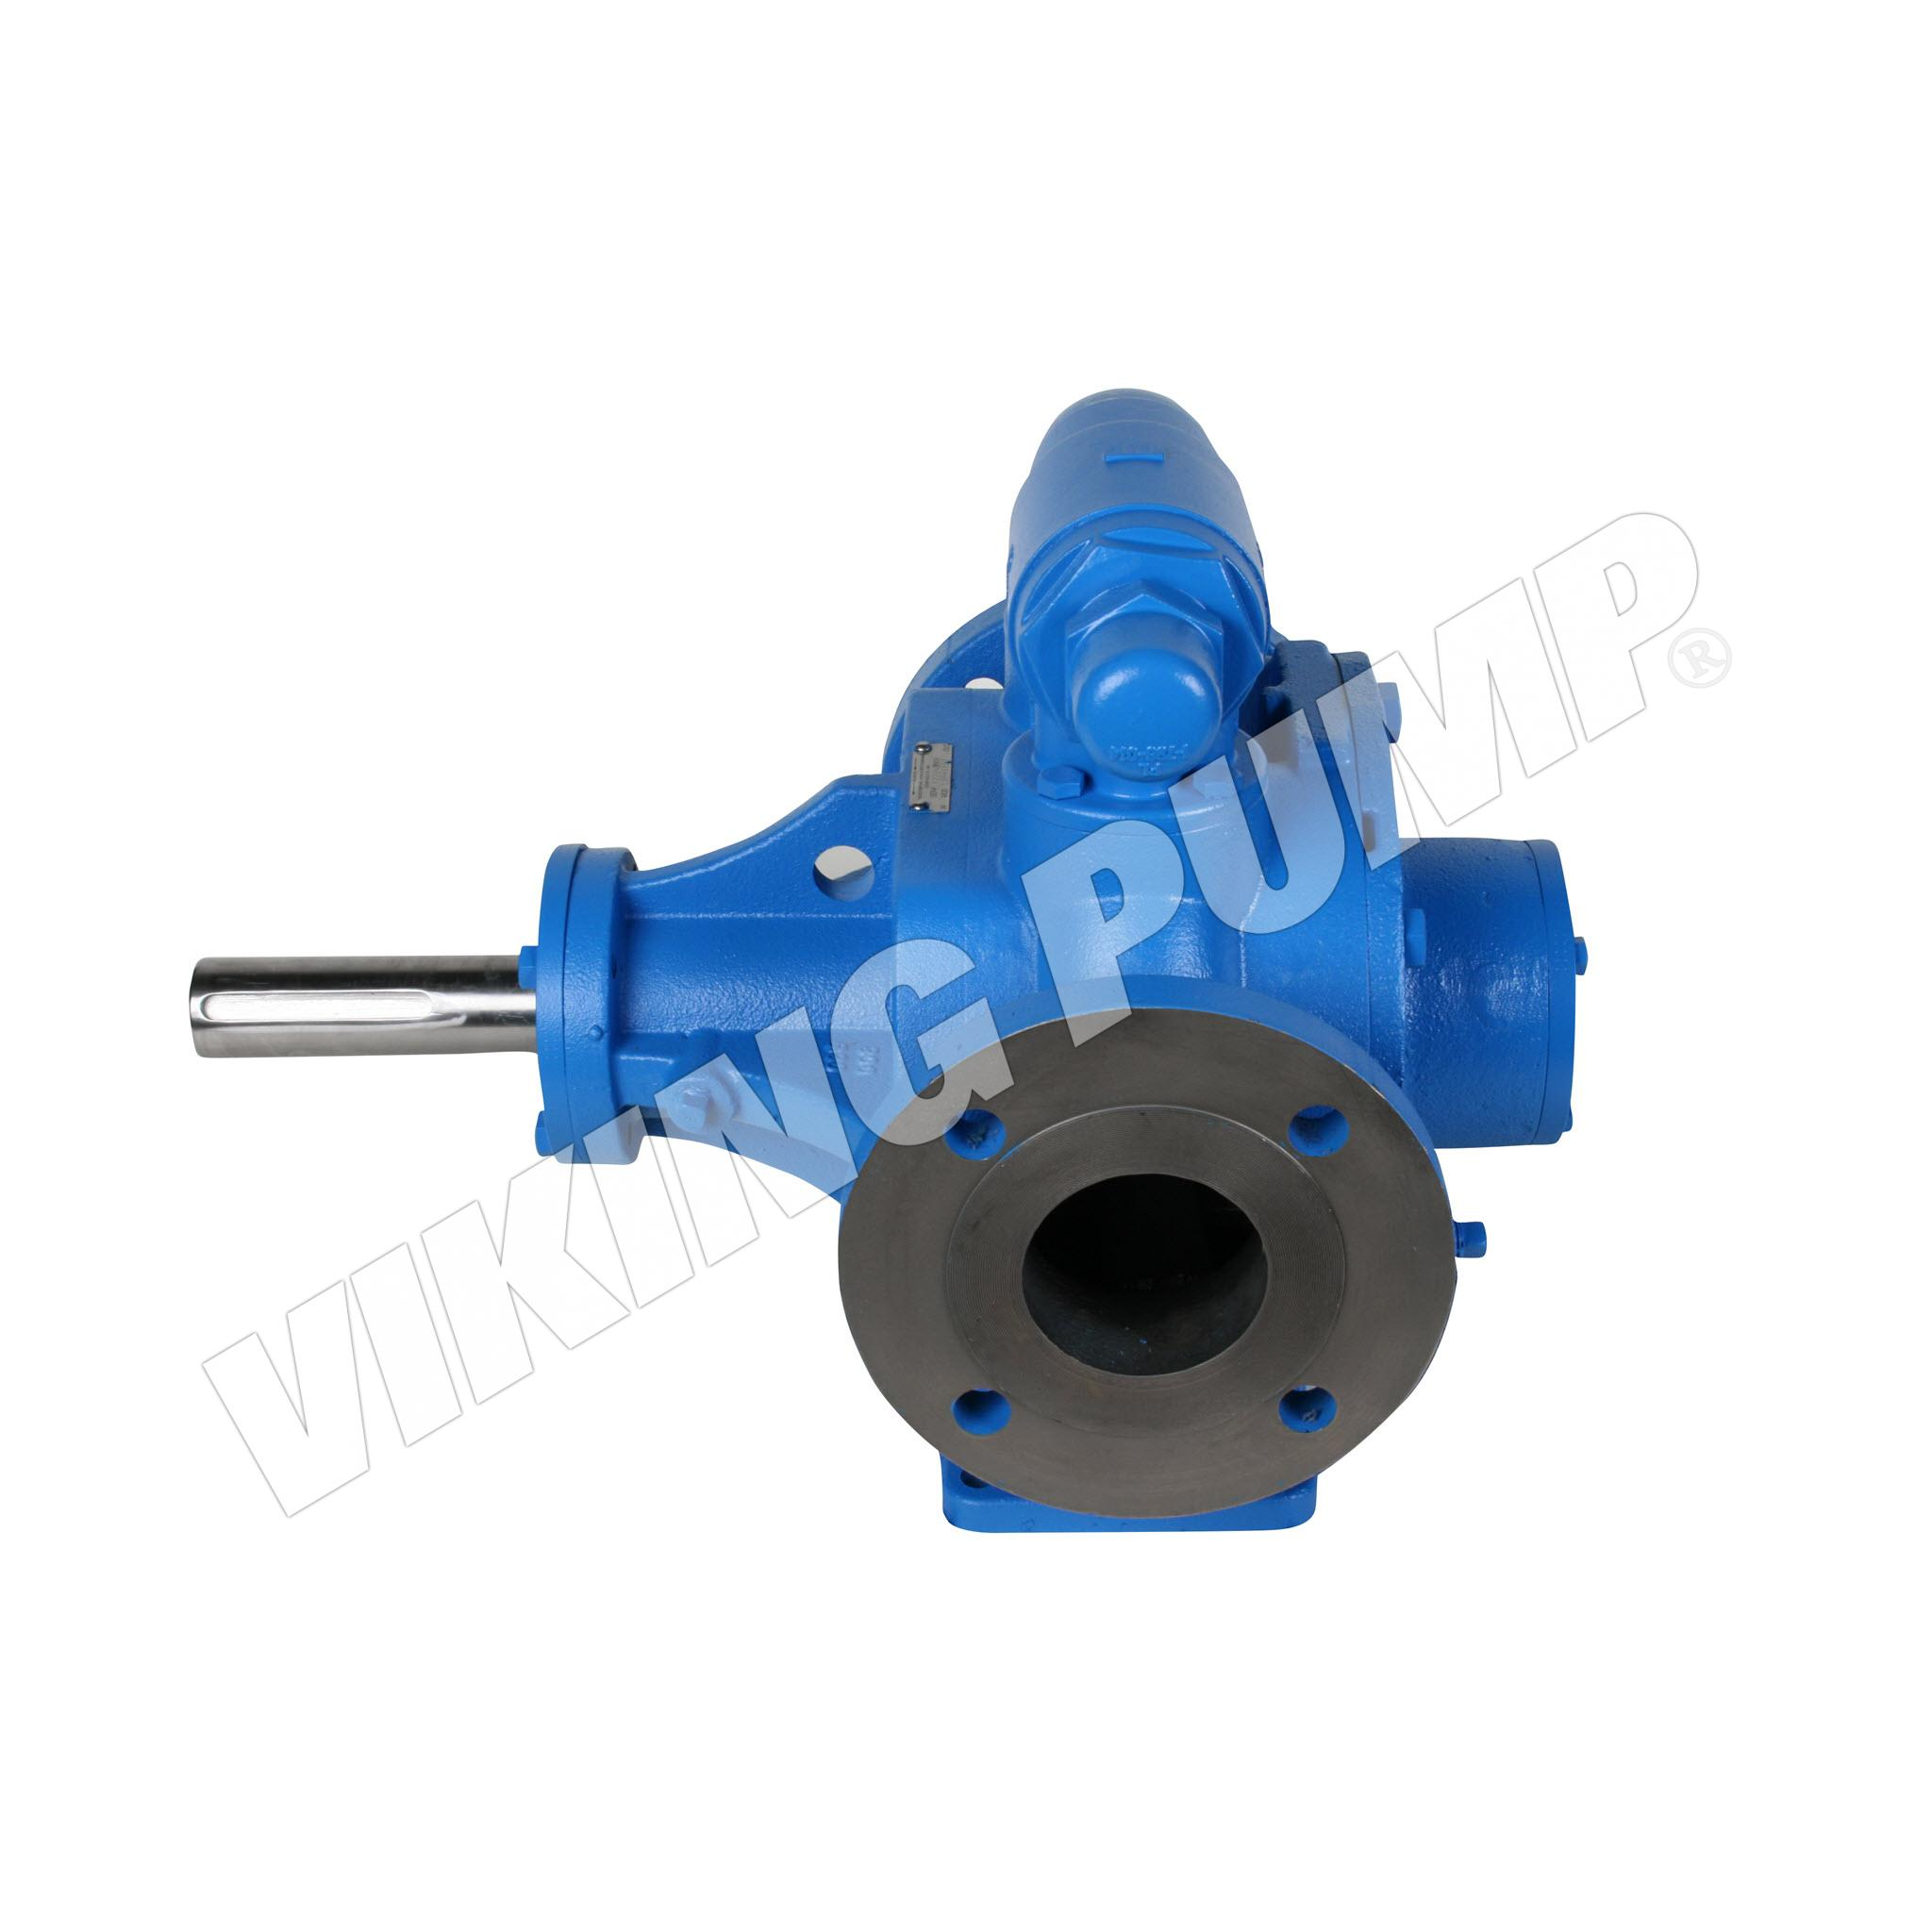 Model LVP41197, Foot Mounted, Mechanical Seal, Relief Valve Pump